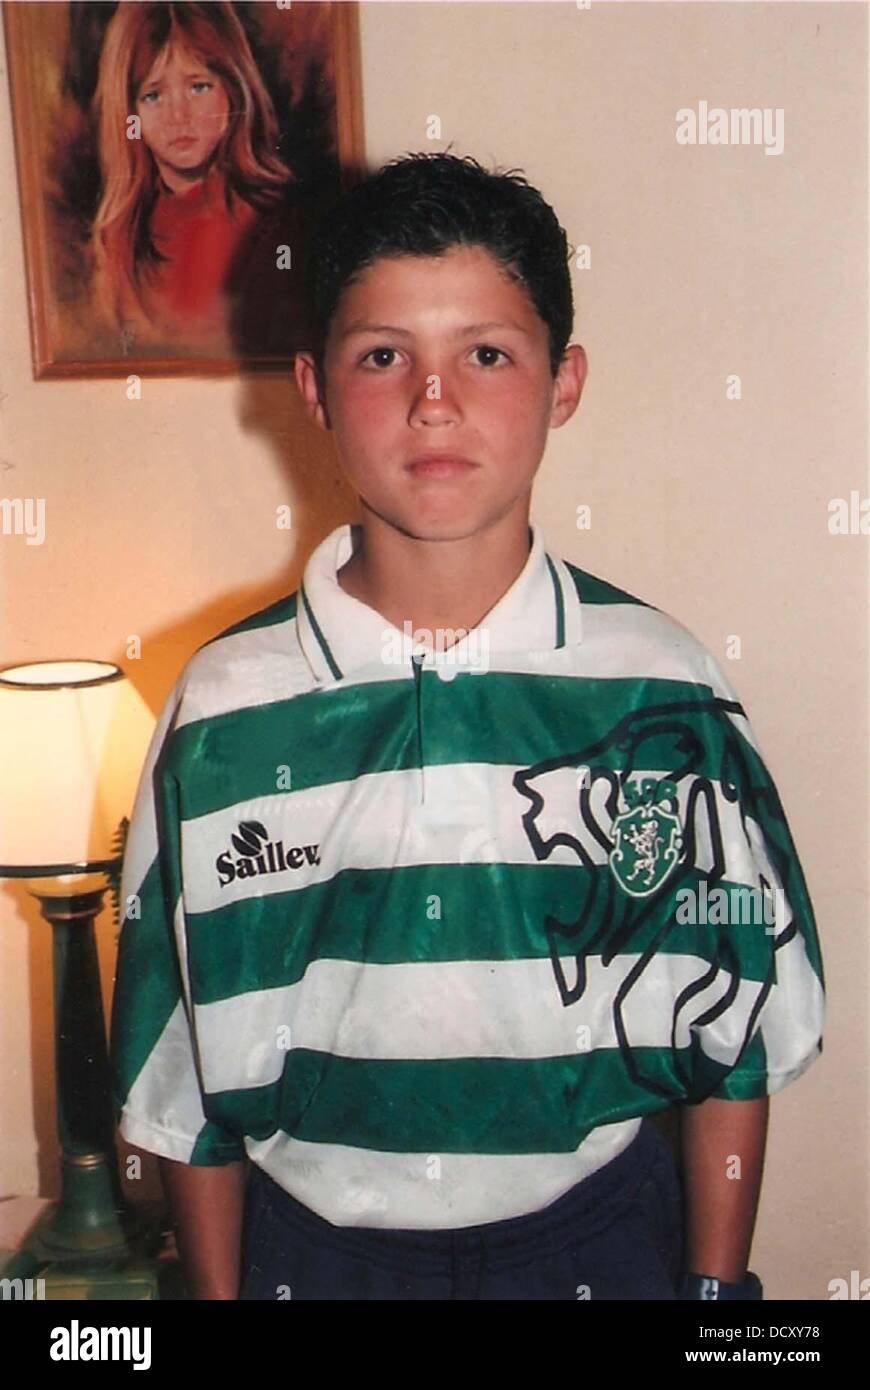 Cristiano Ronaldo Childhood Photos Of Cristiano Ronaldo Madeira